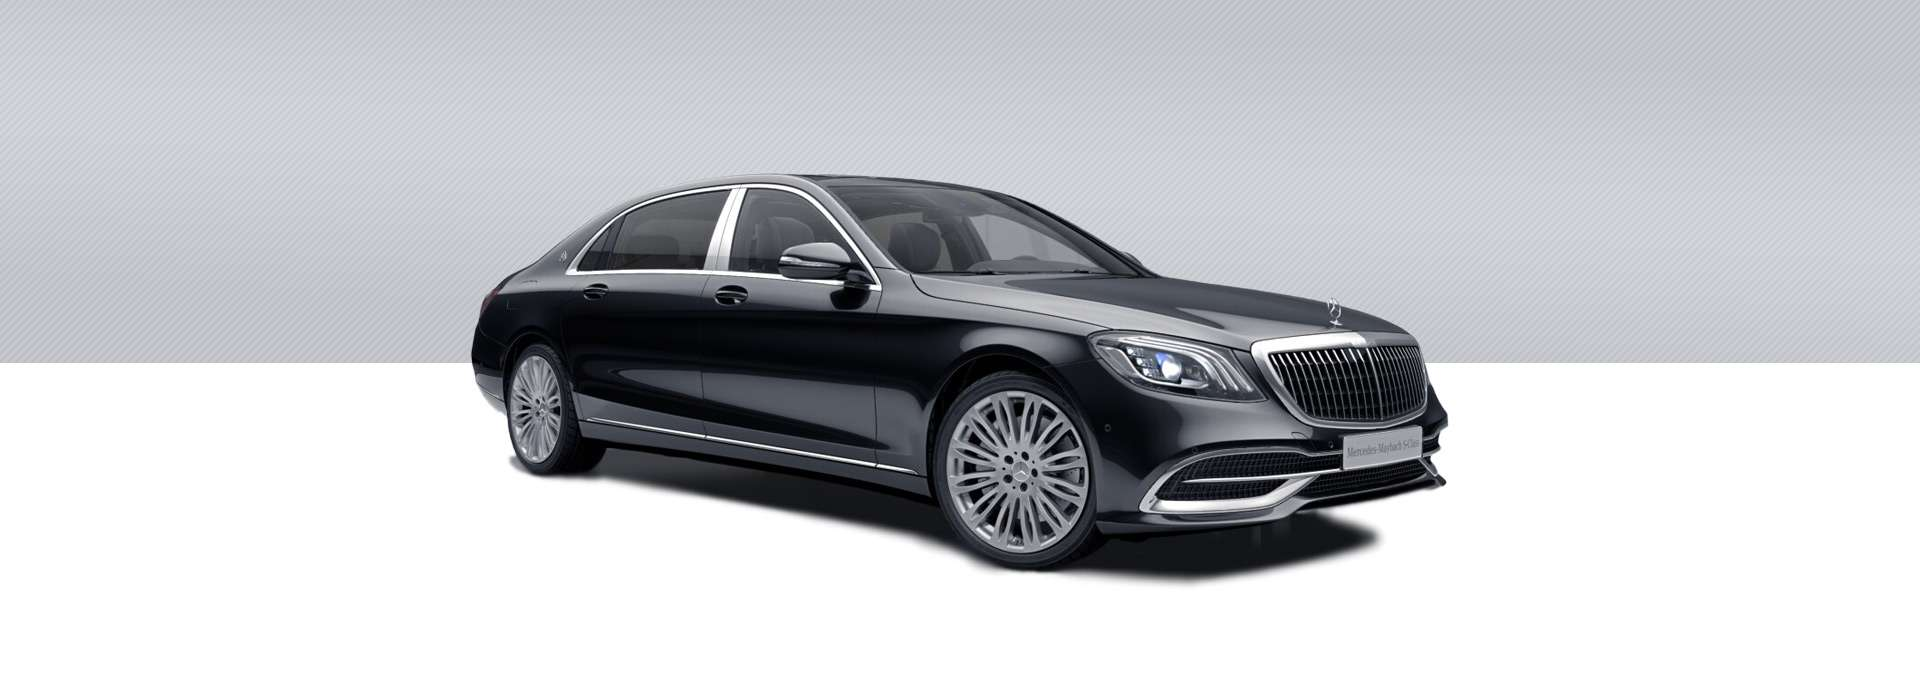 Mercedes Benz CLASE S MERCEDES MAYBACH